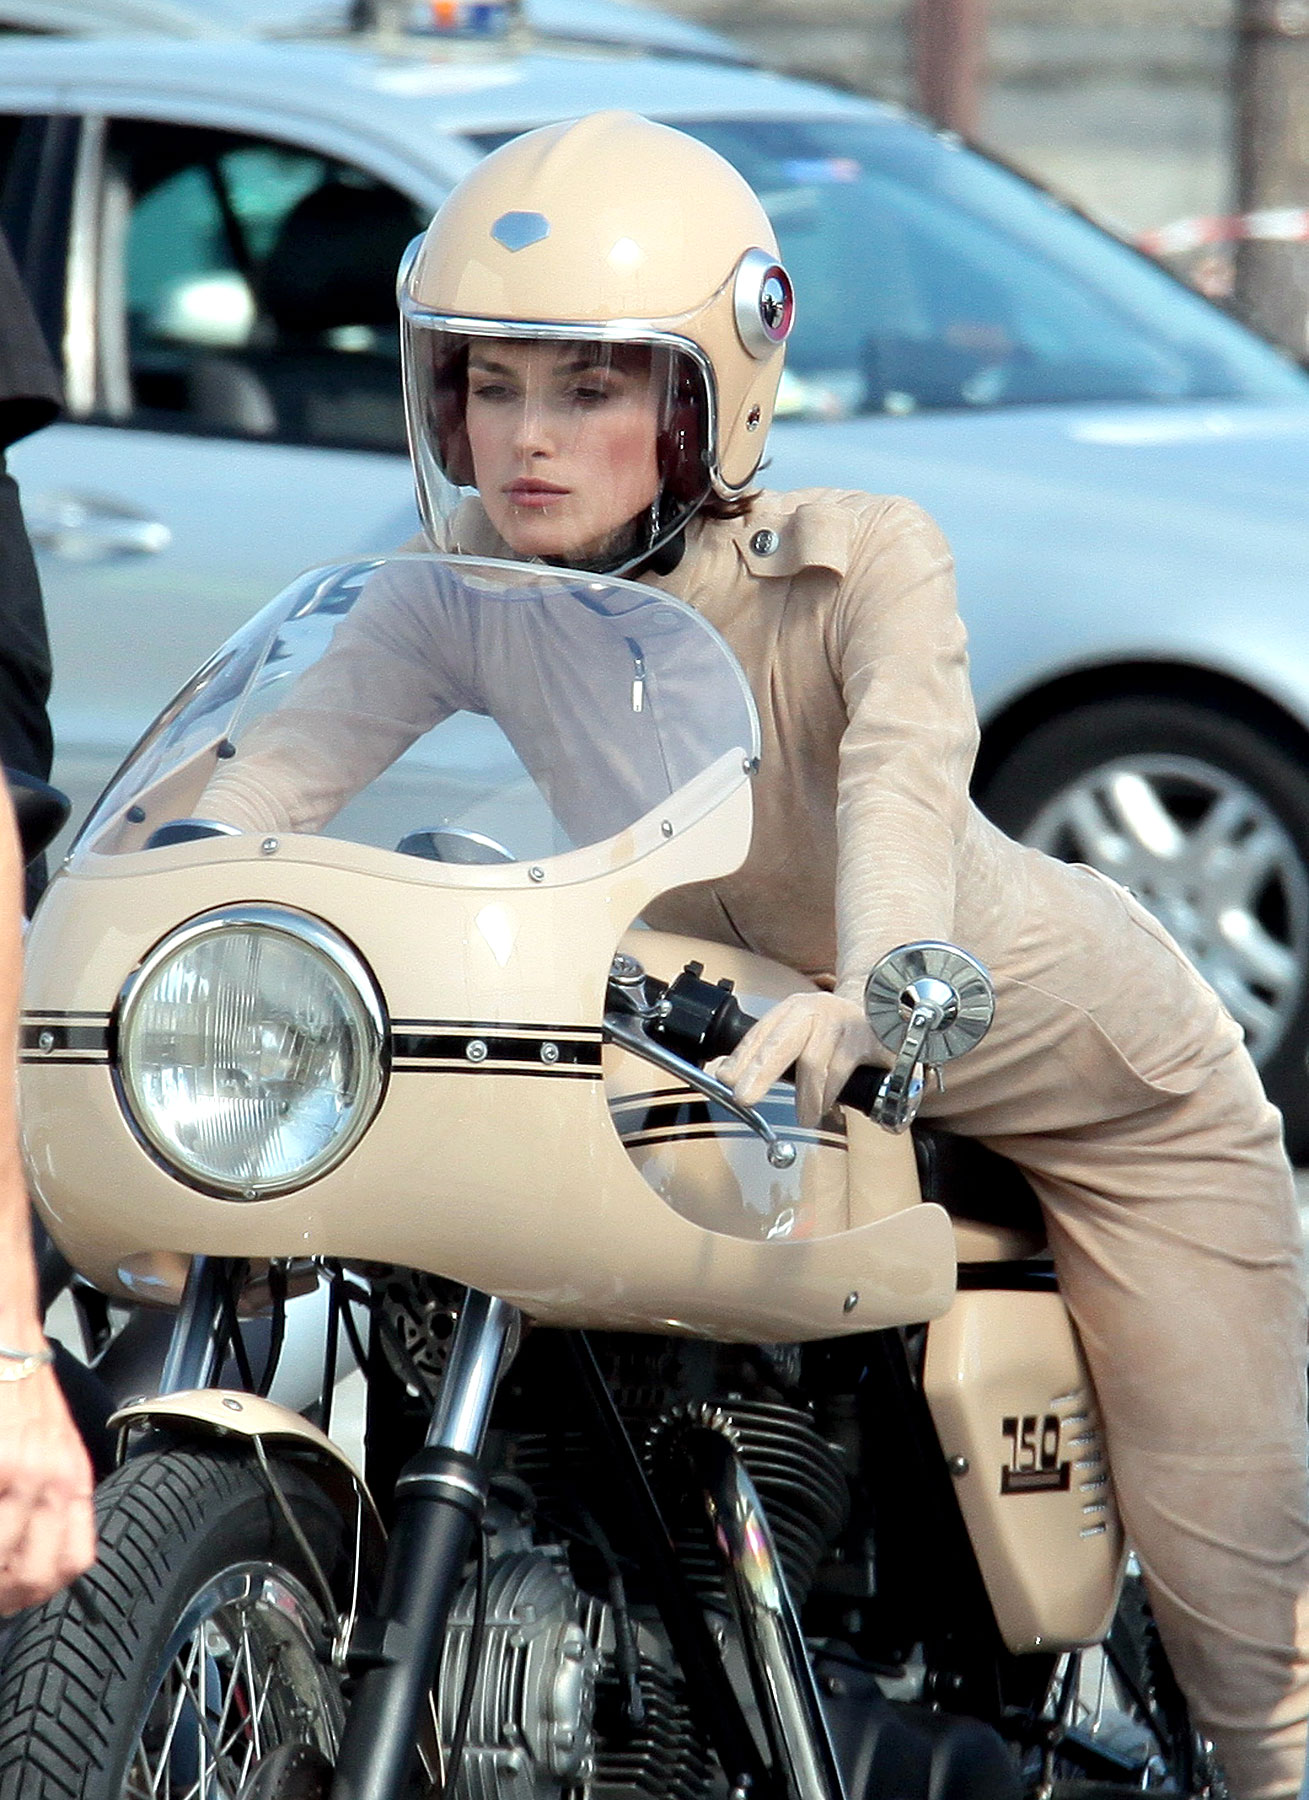 Keira Knightley Rides with Chanel (PHOTOS)